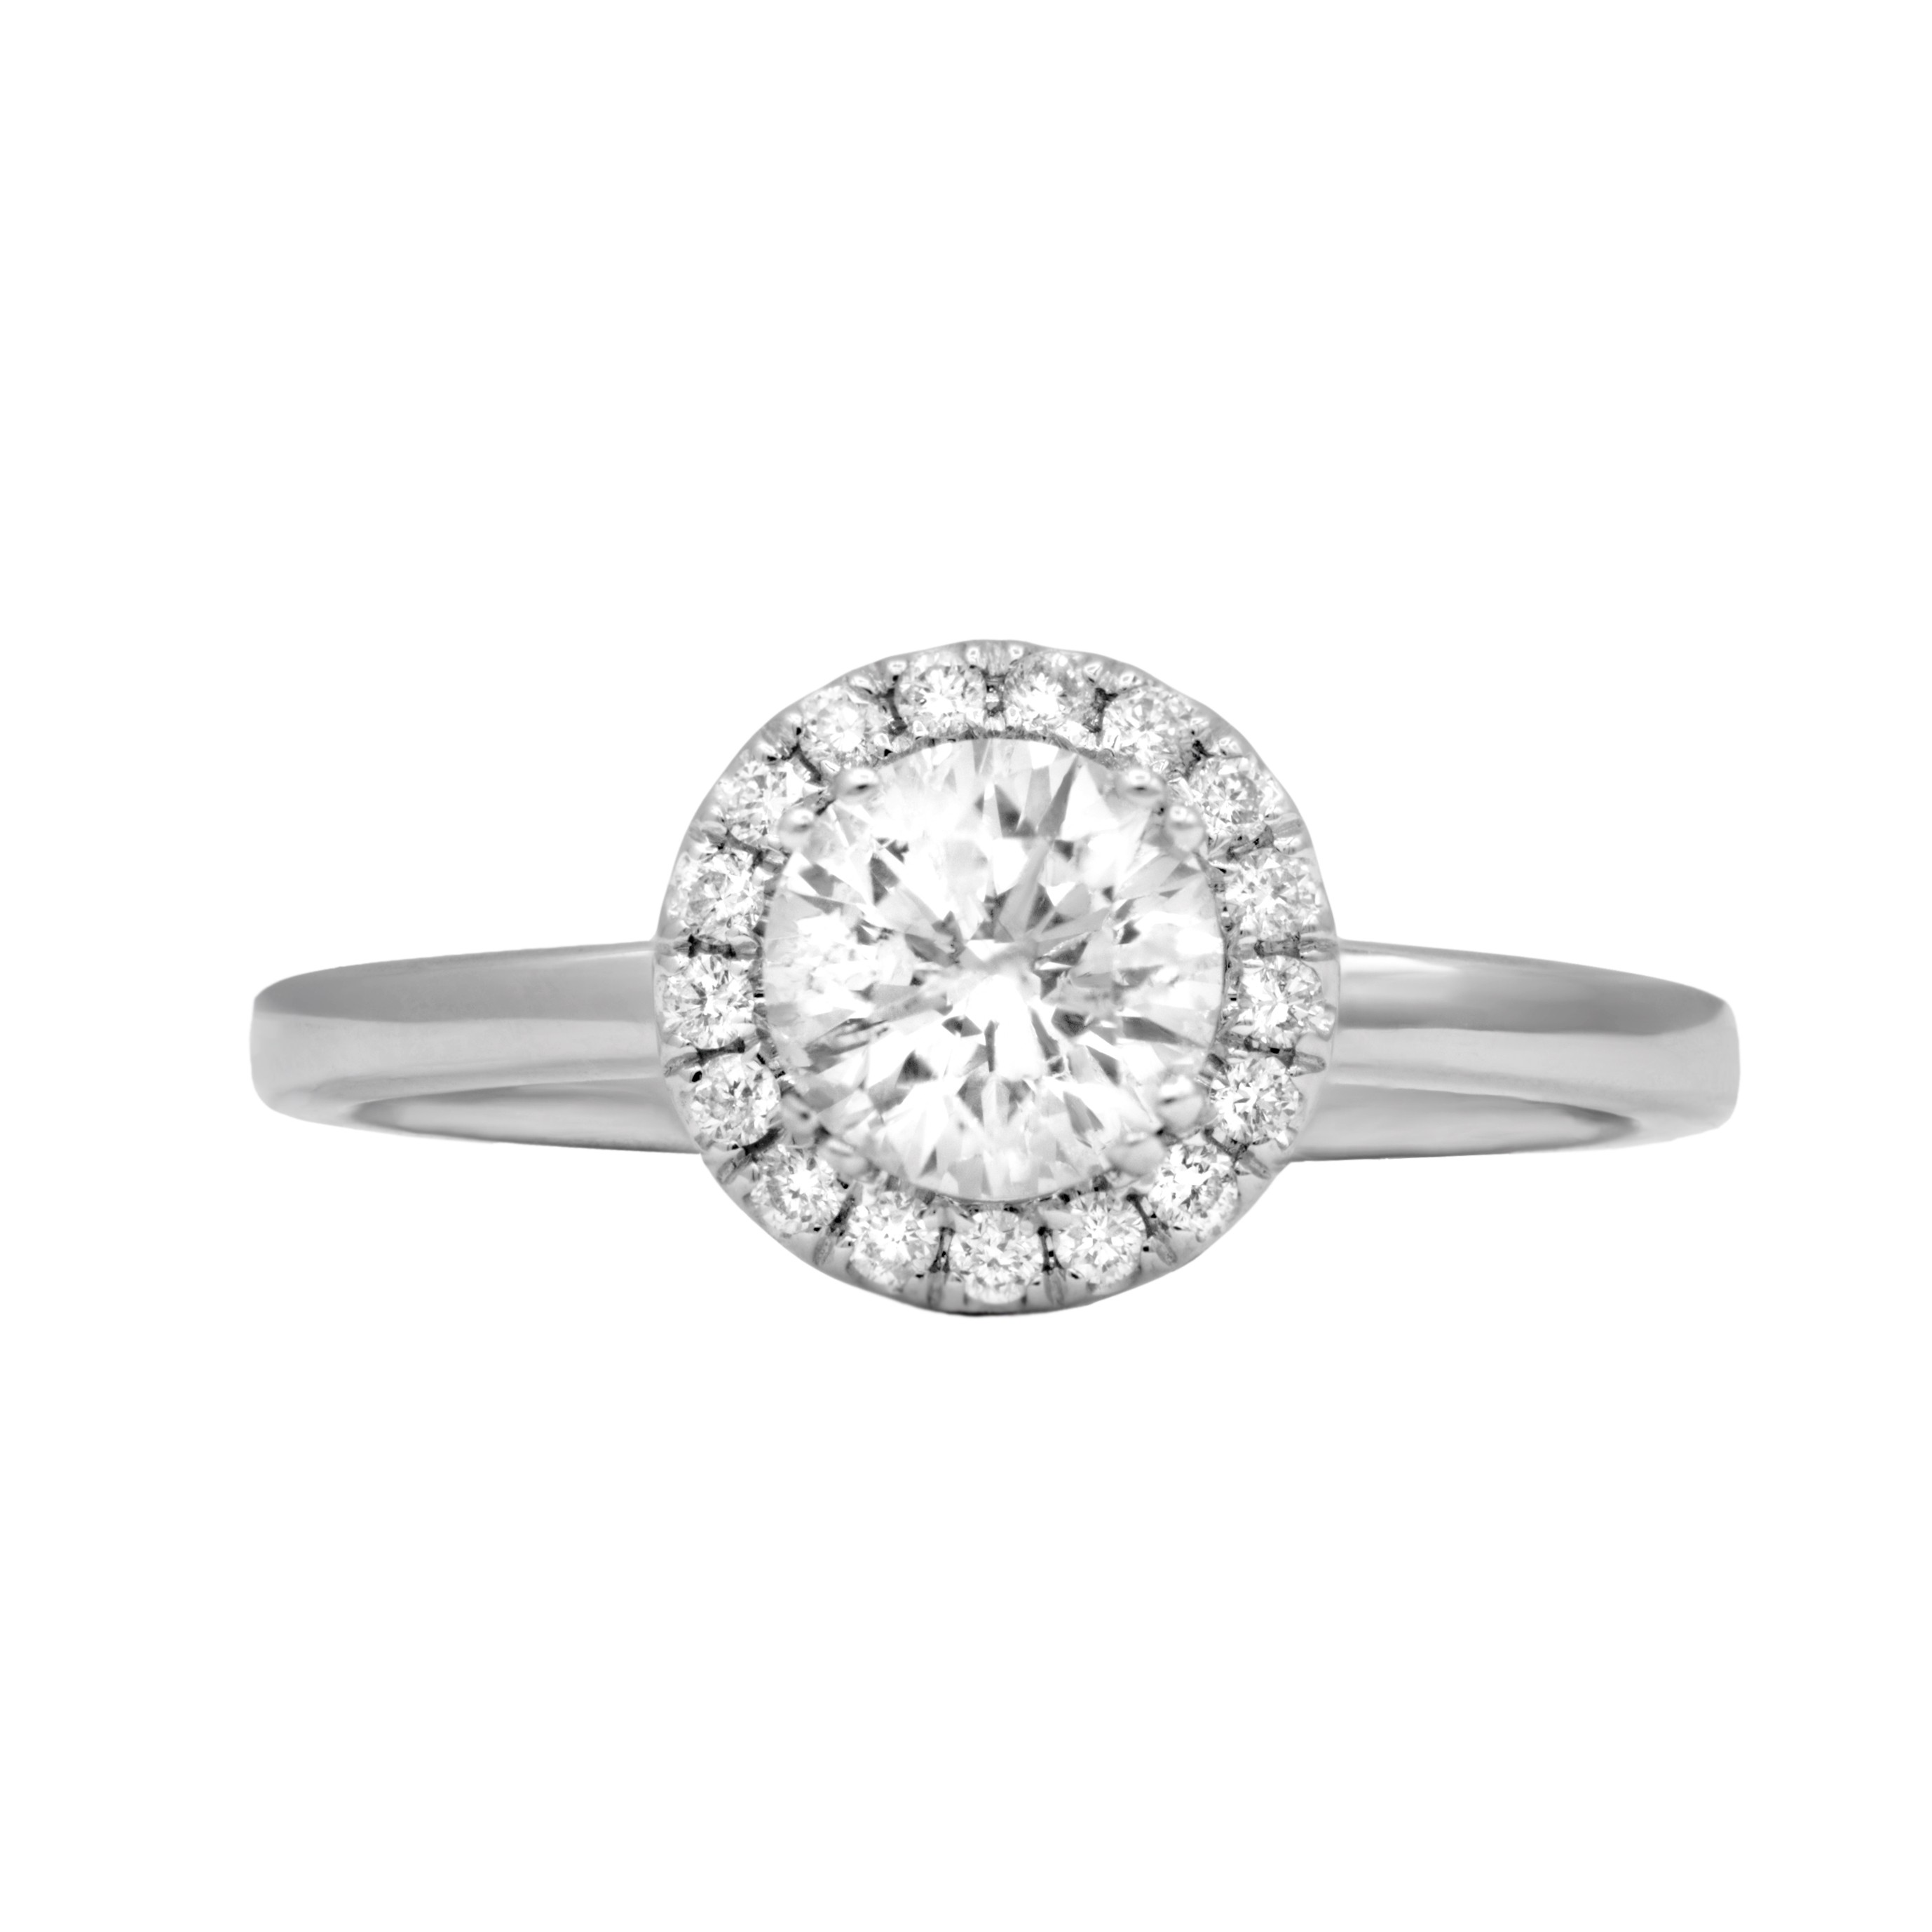 Gorgeous 1.40cts halo diamond engagement  ring